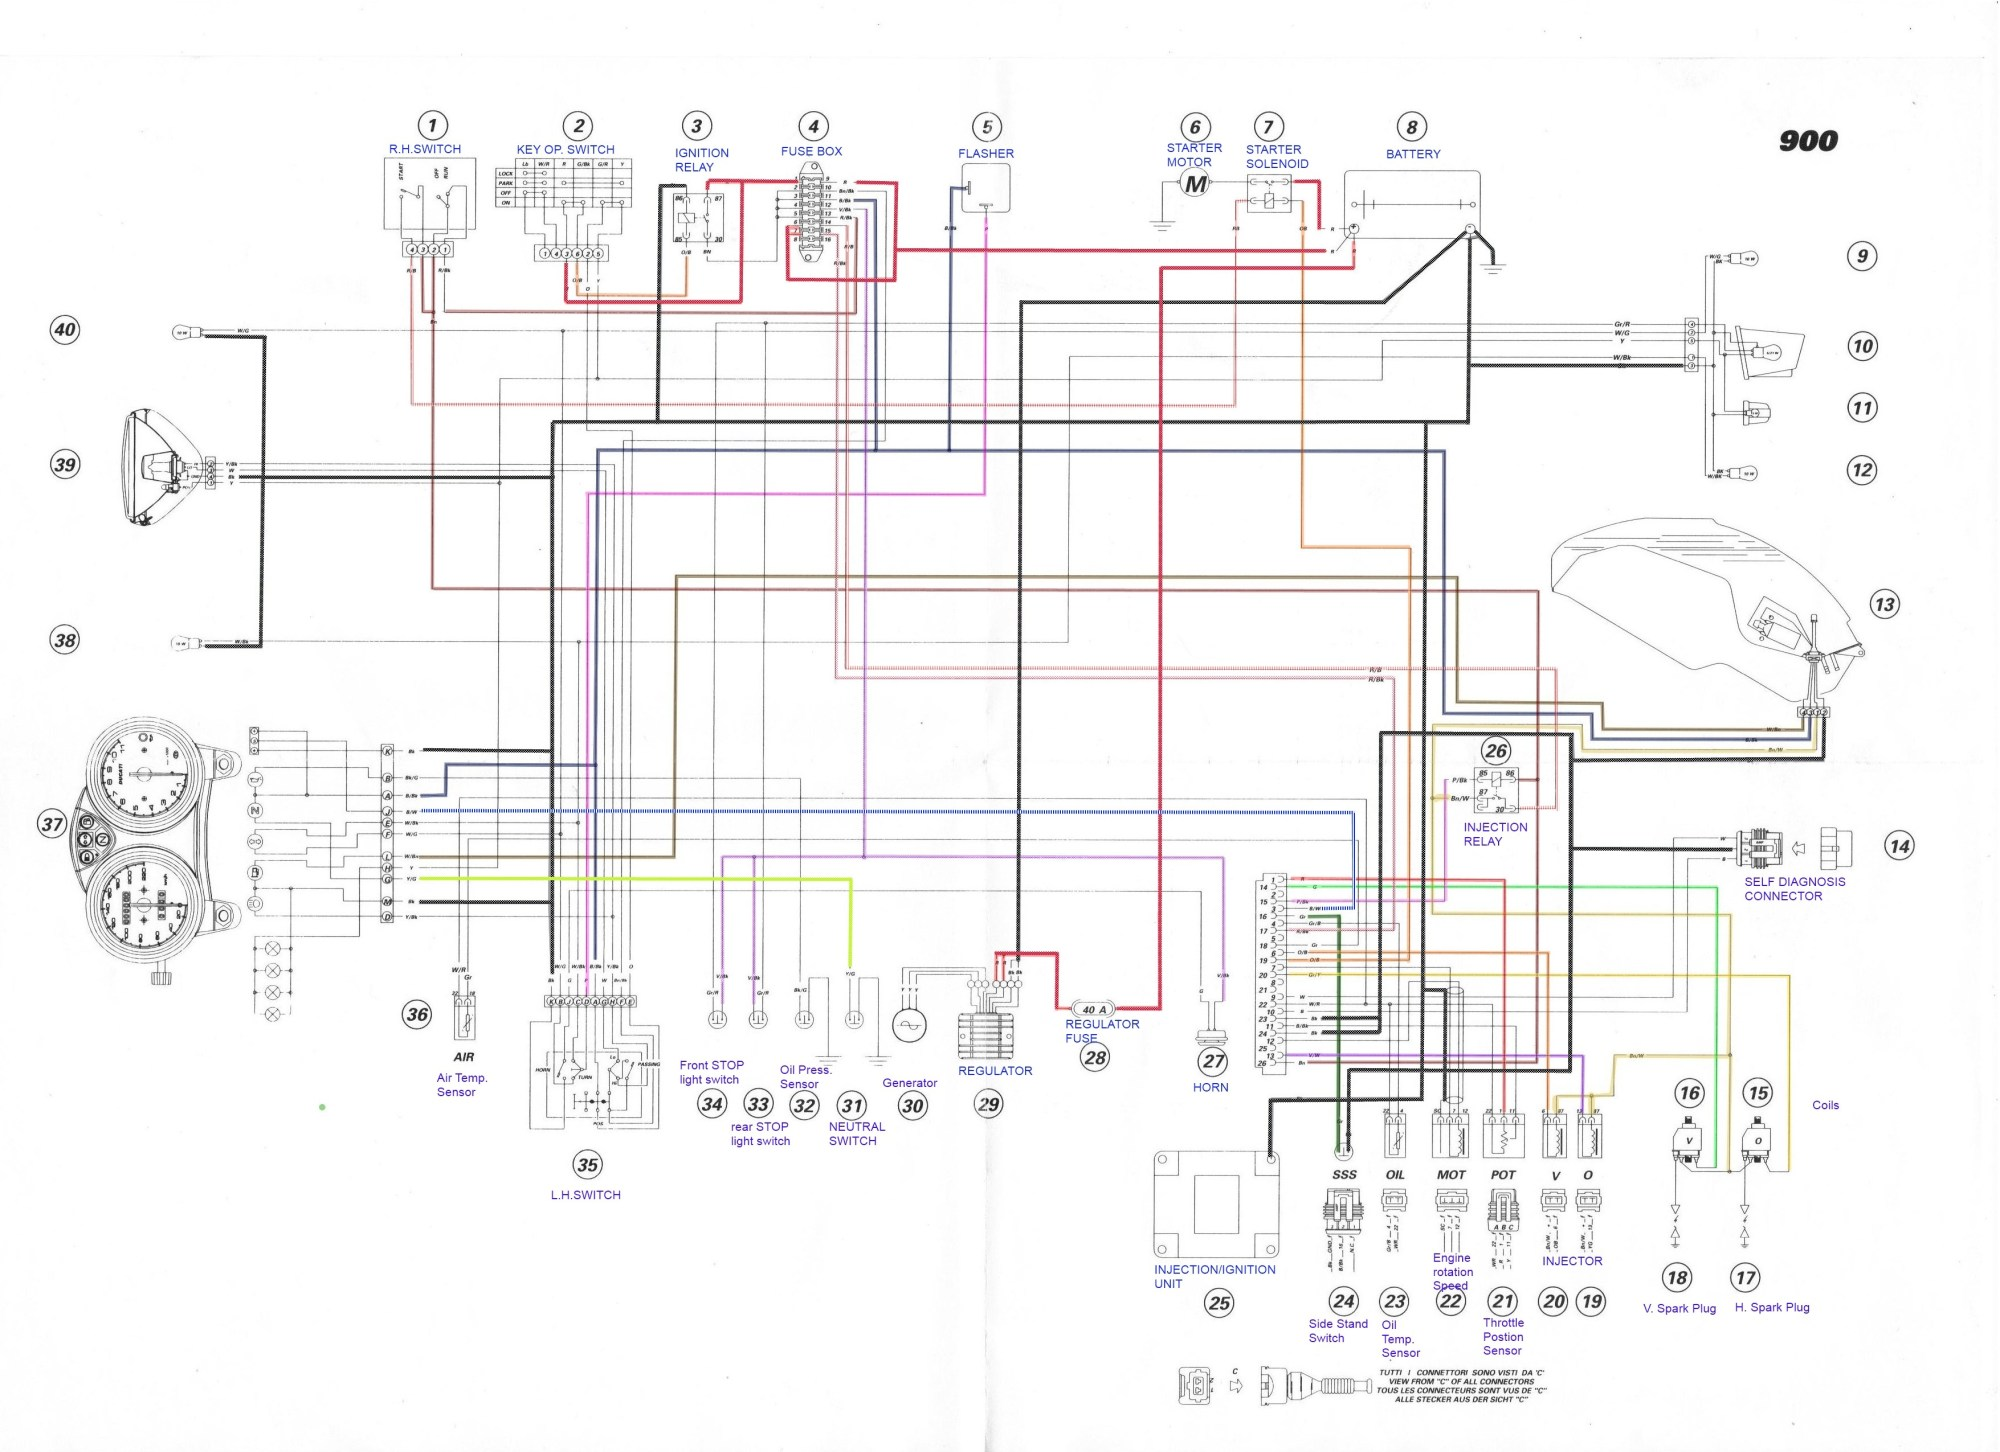 hight resolution of ducati 160 wiring diagram wiring diagram mega ducati 888 wiring diagram